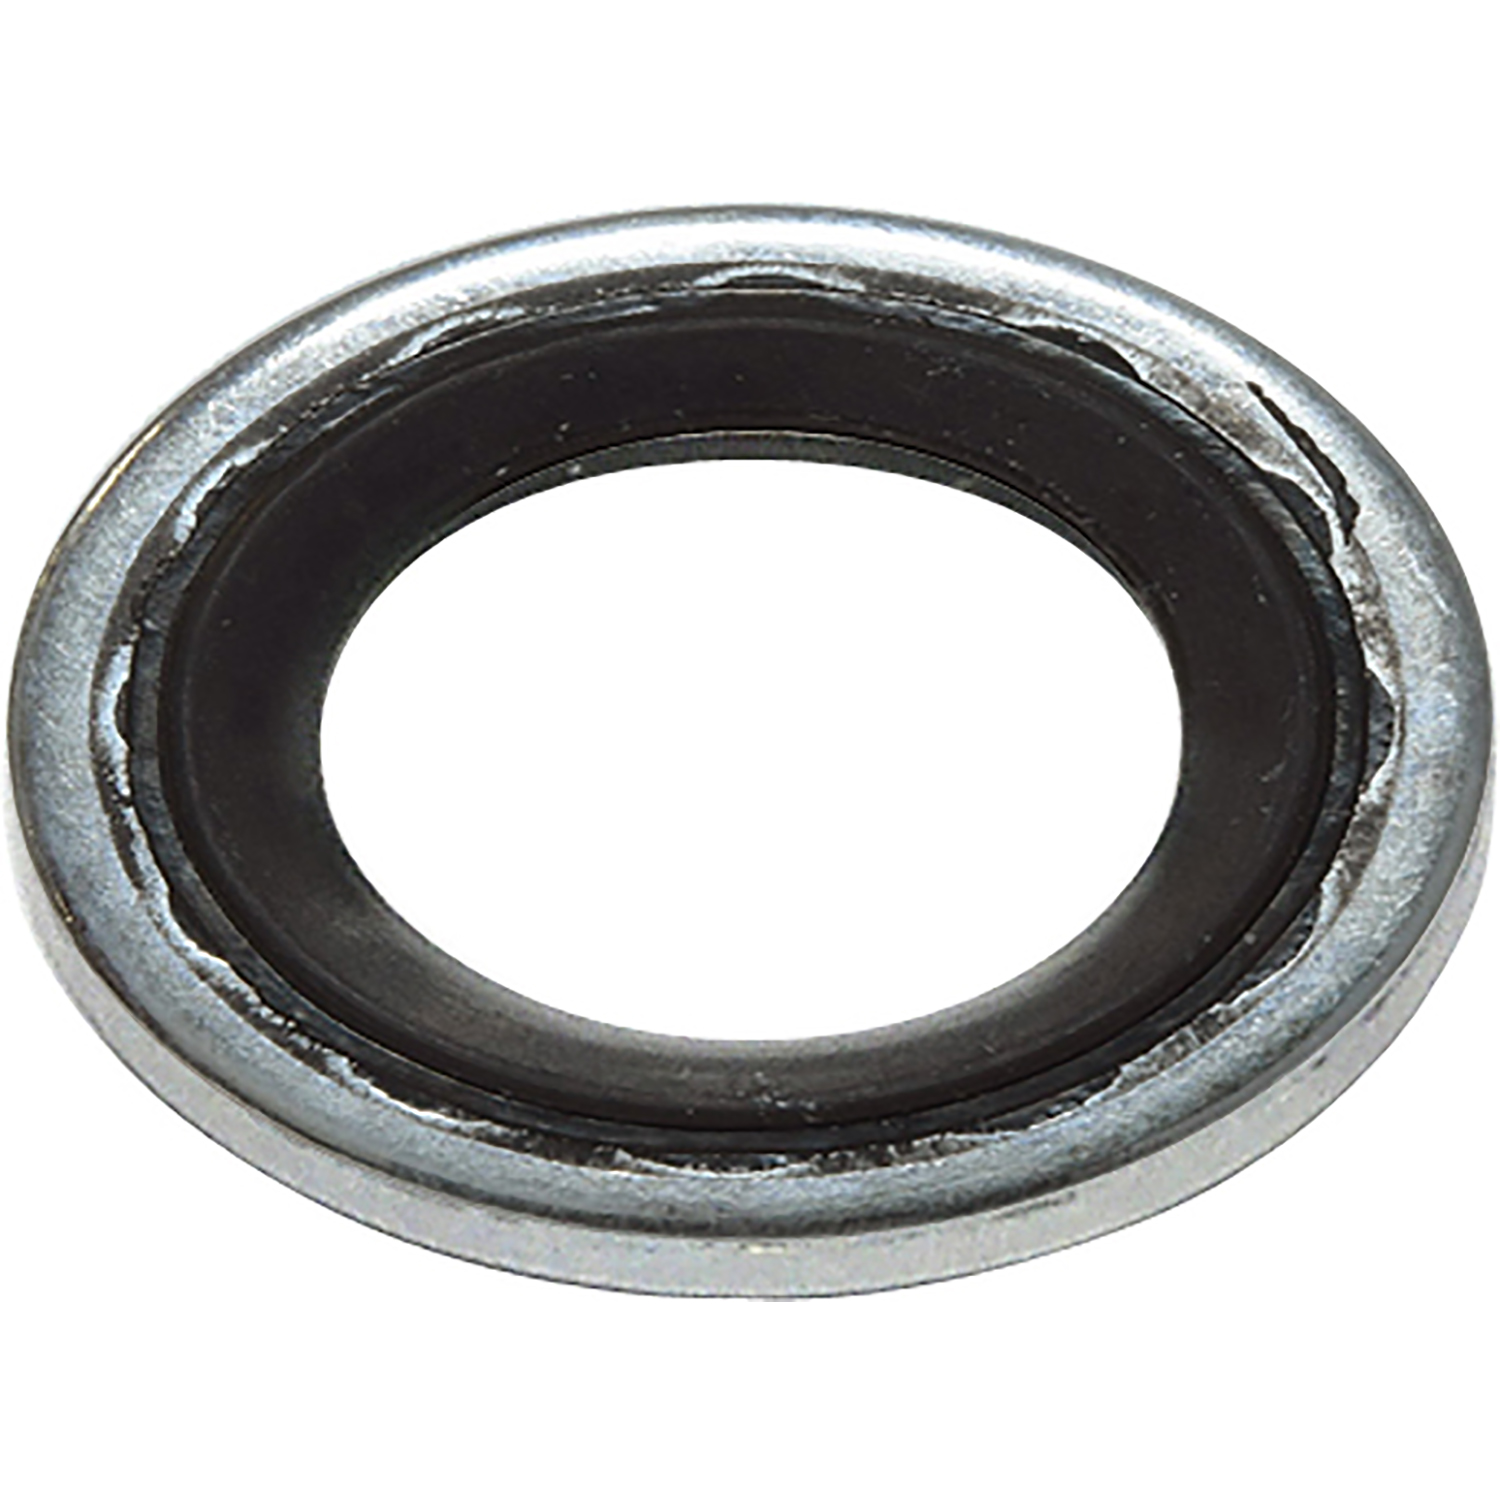 Thin Line Sealing Washer for Late Model GM Fittings  #8-11mm I.D.